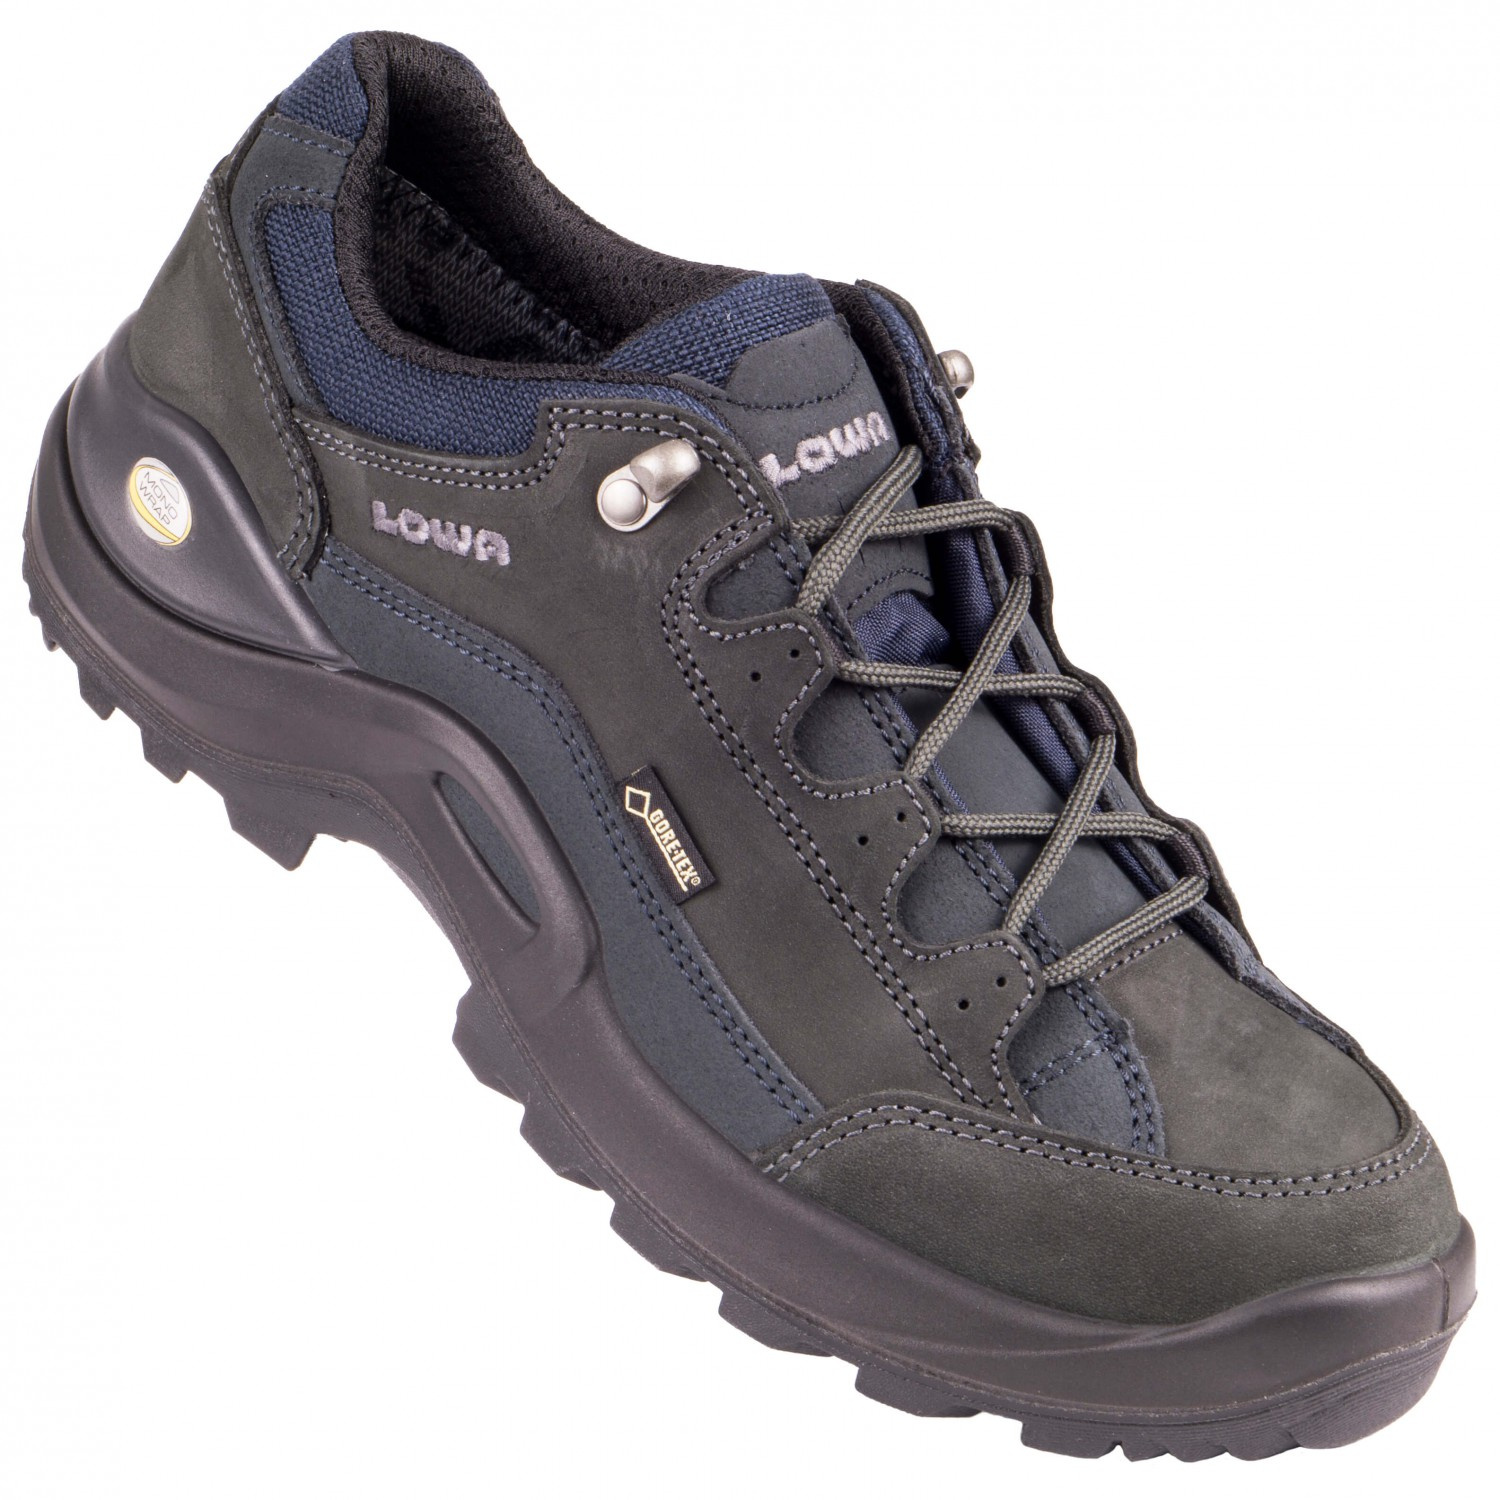 competitive price discount shop outlet for sale Lowa - Women's Renegade II GTX Lo - Multisport shoes